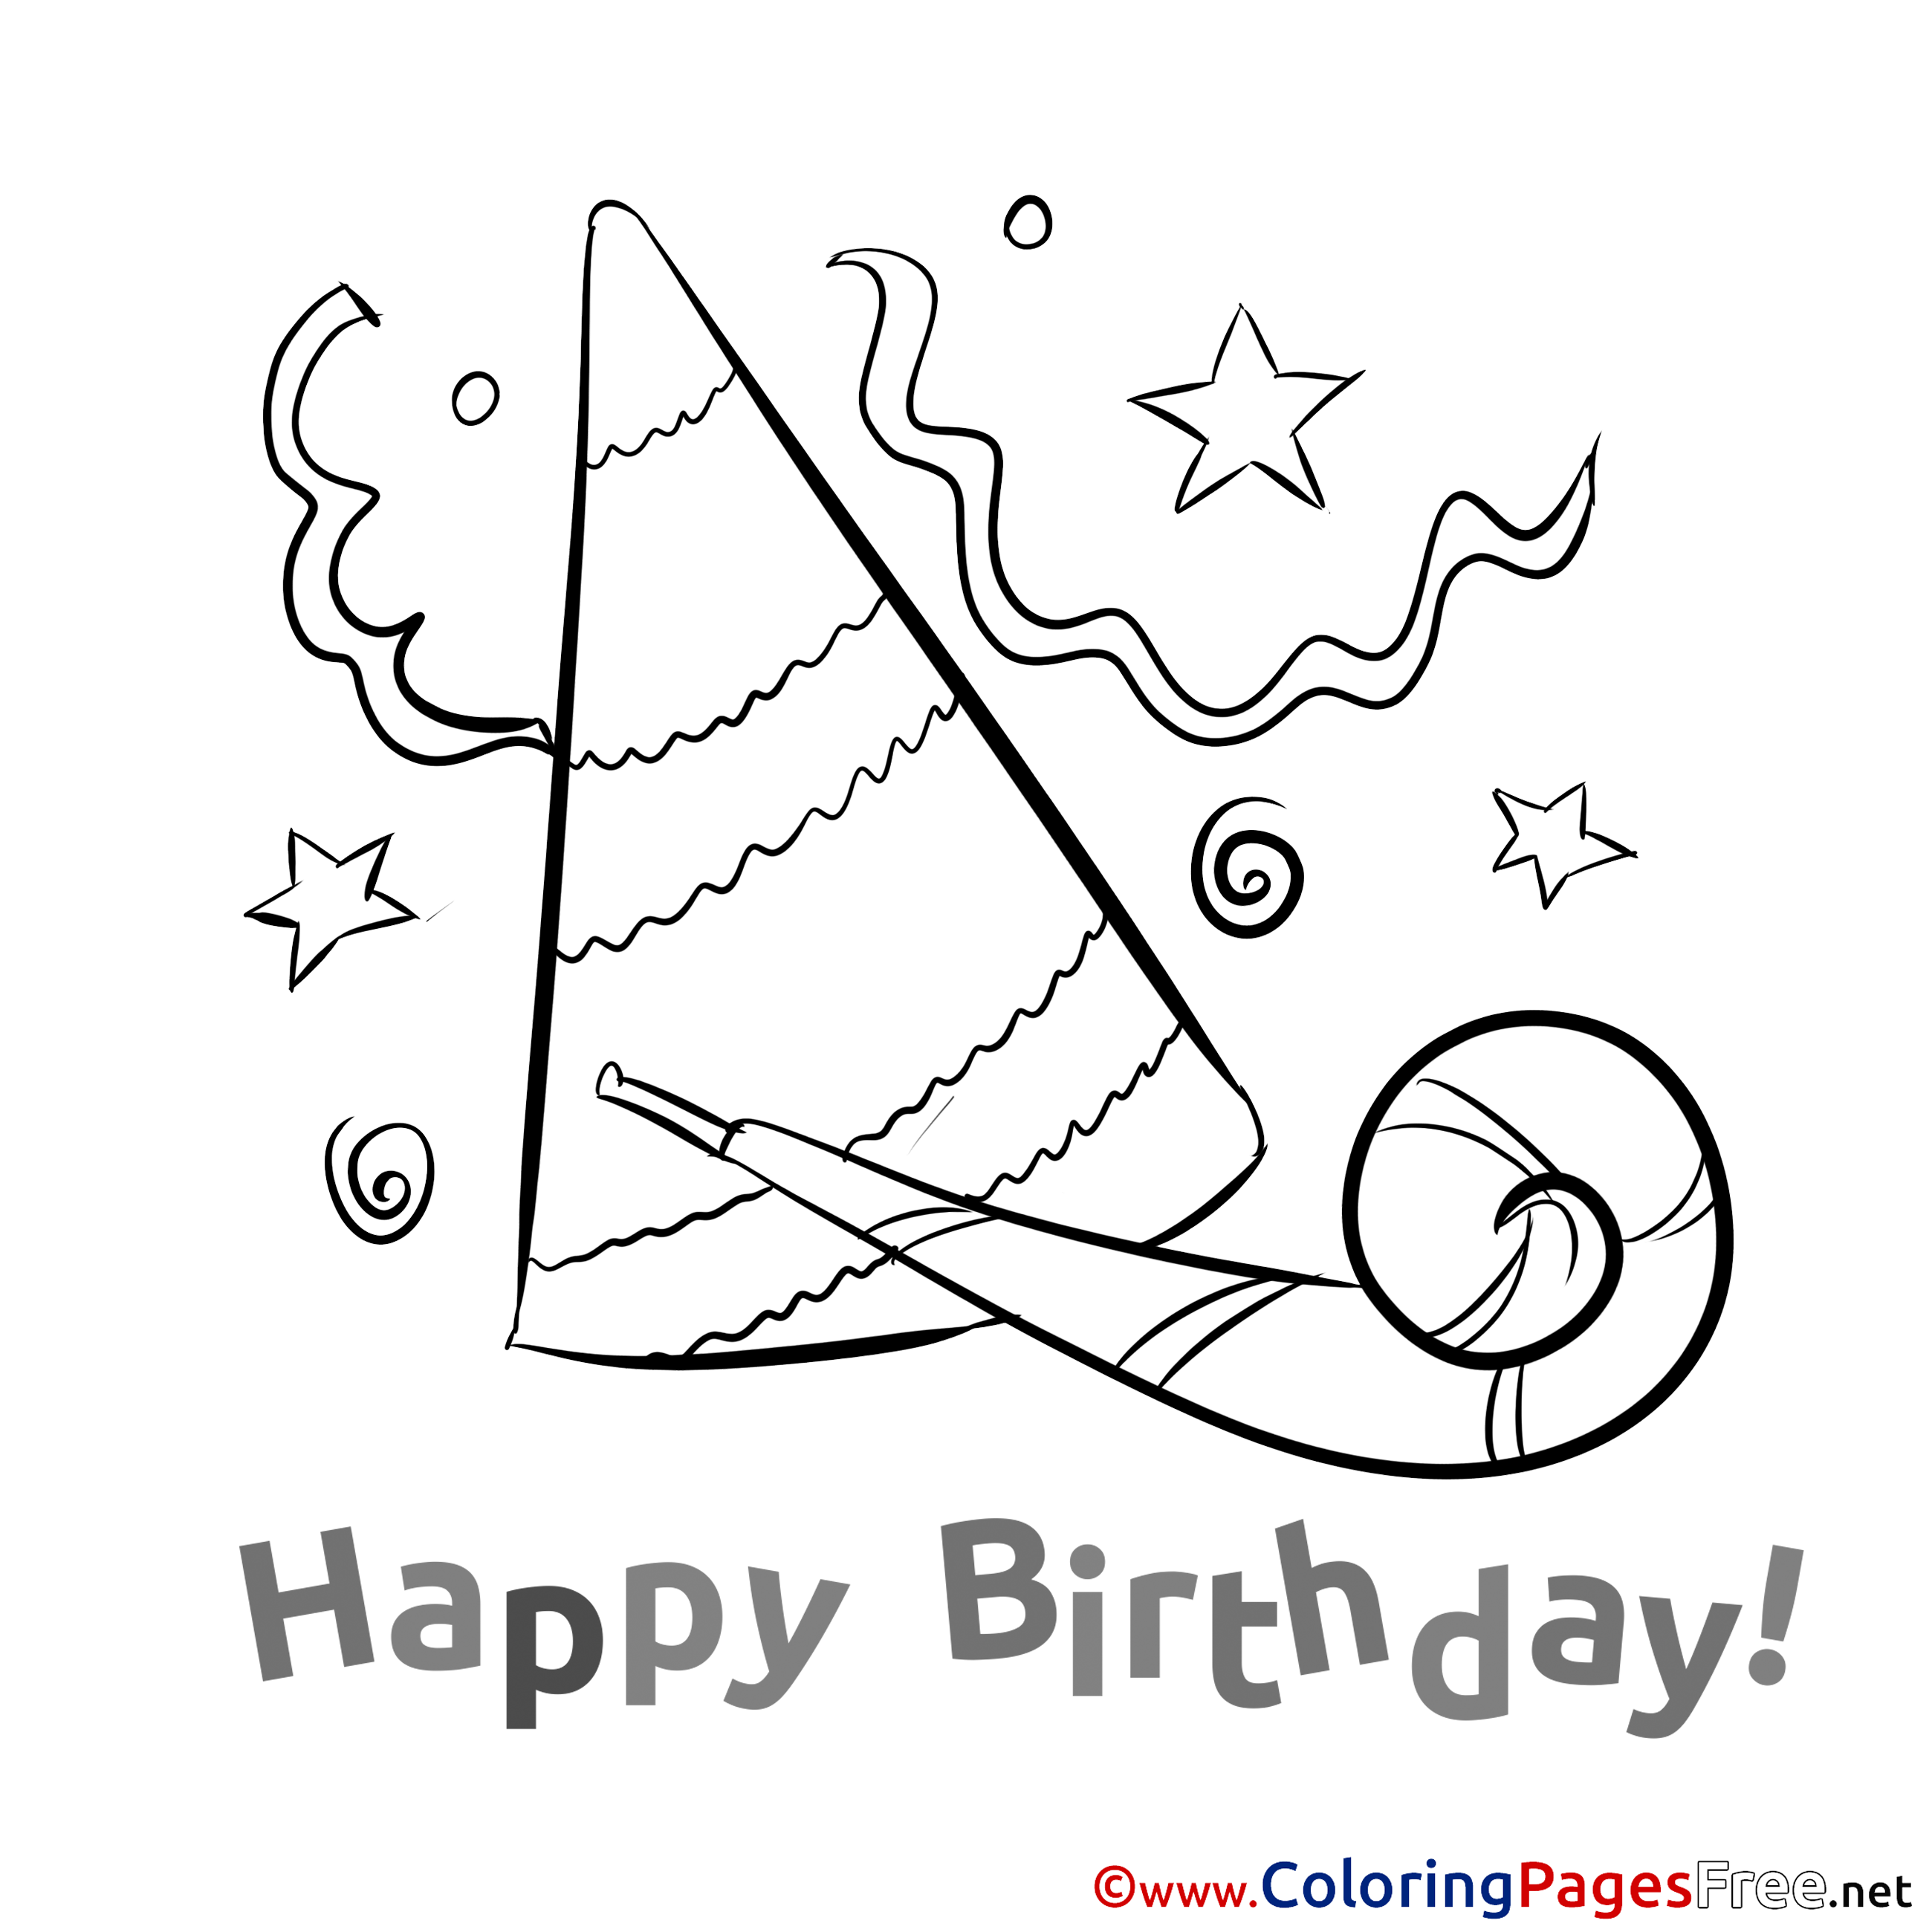 coloring pages of birthday hats party hat for kids happy birthday colouring page pages birthday of coloring hats